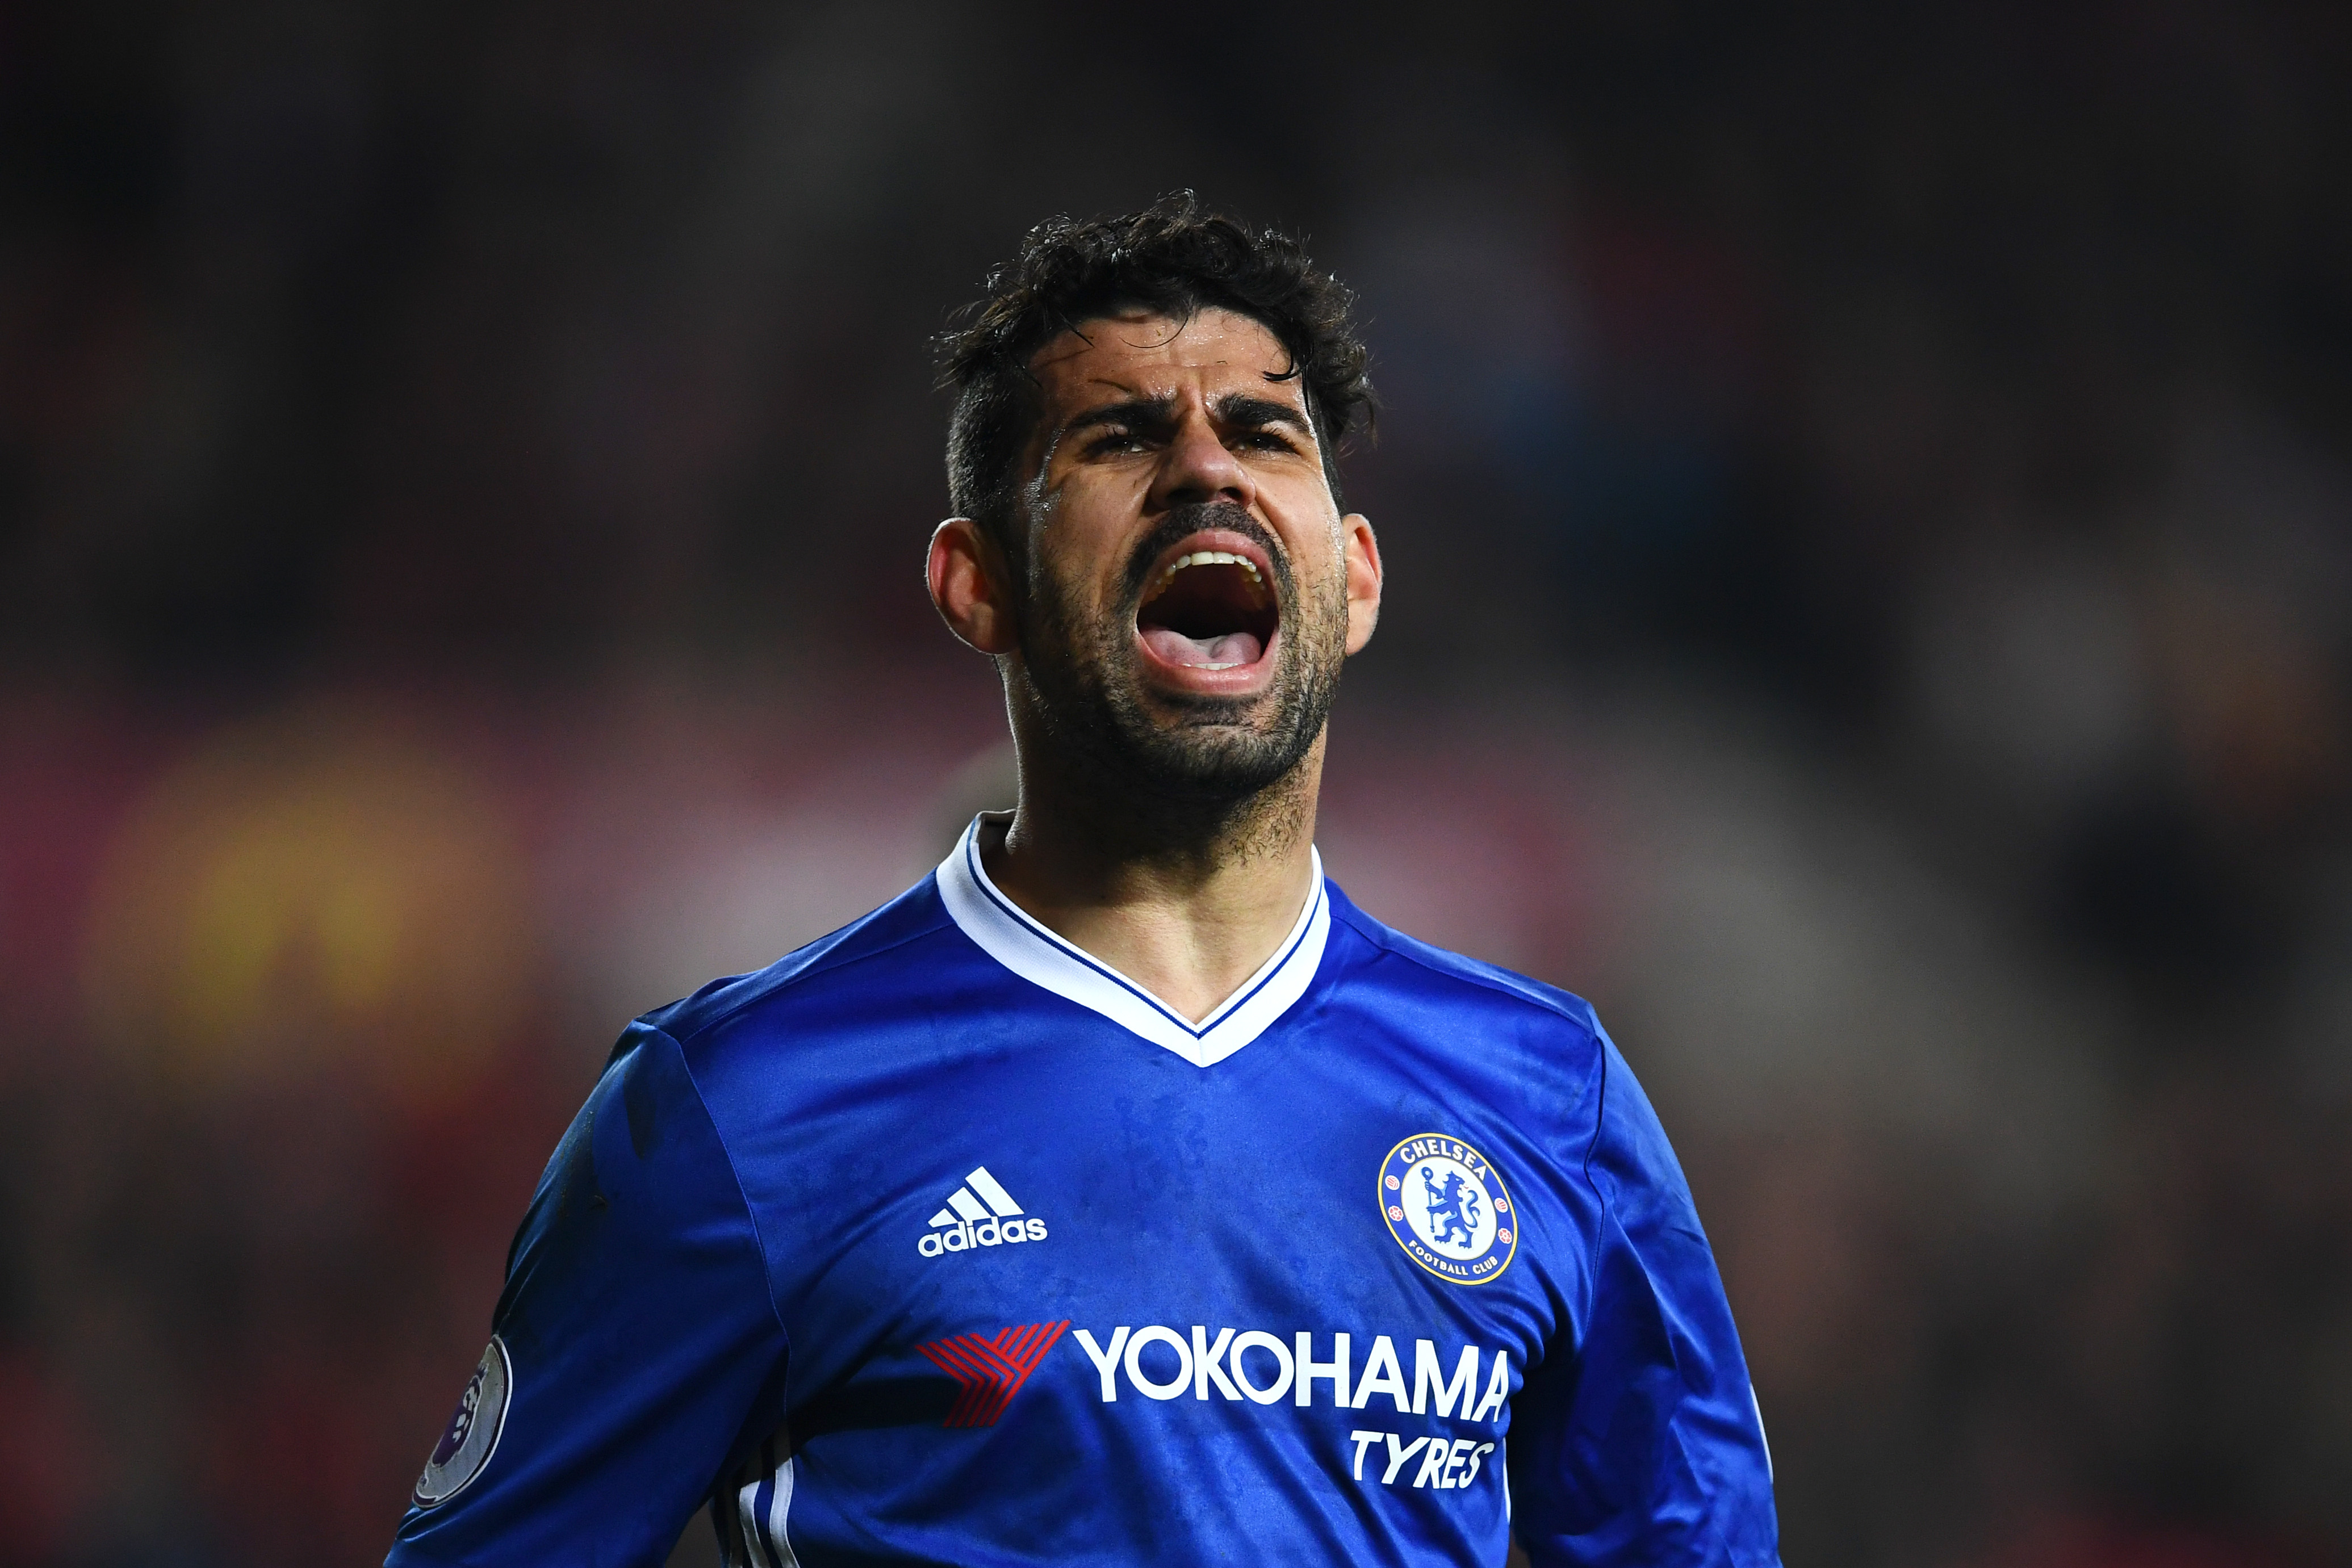 Chelsea hero Diego Costa admits he LOVED battling with Real Madrid duo Sergio Ramos and Pepe